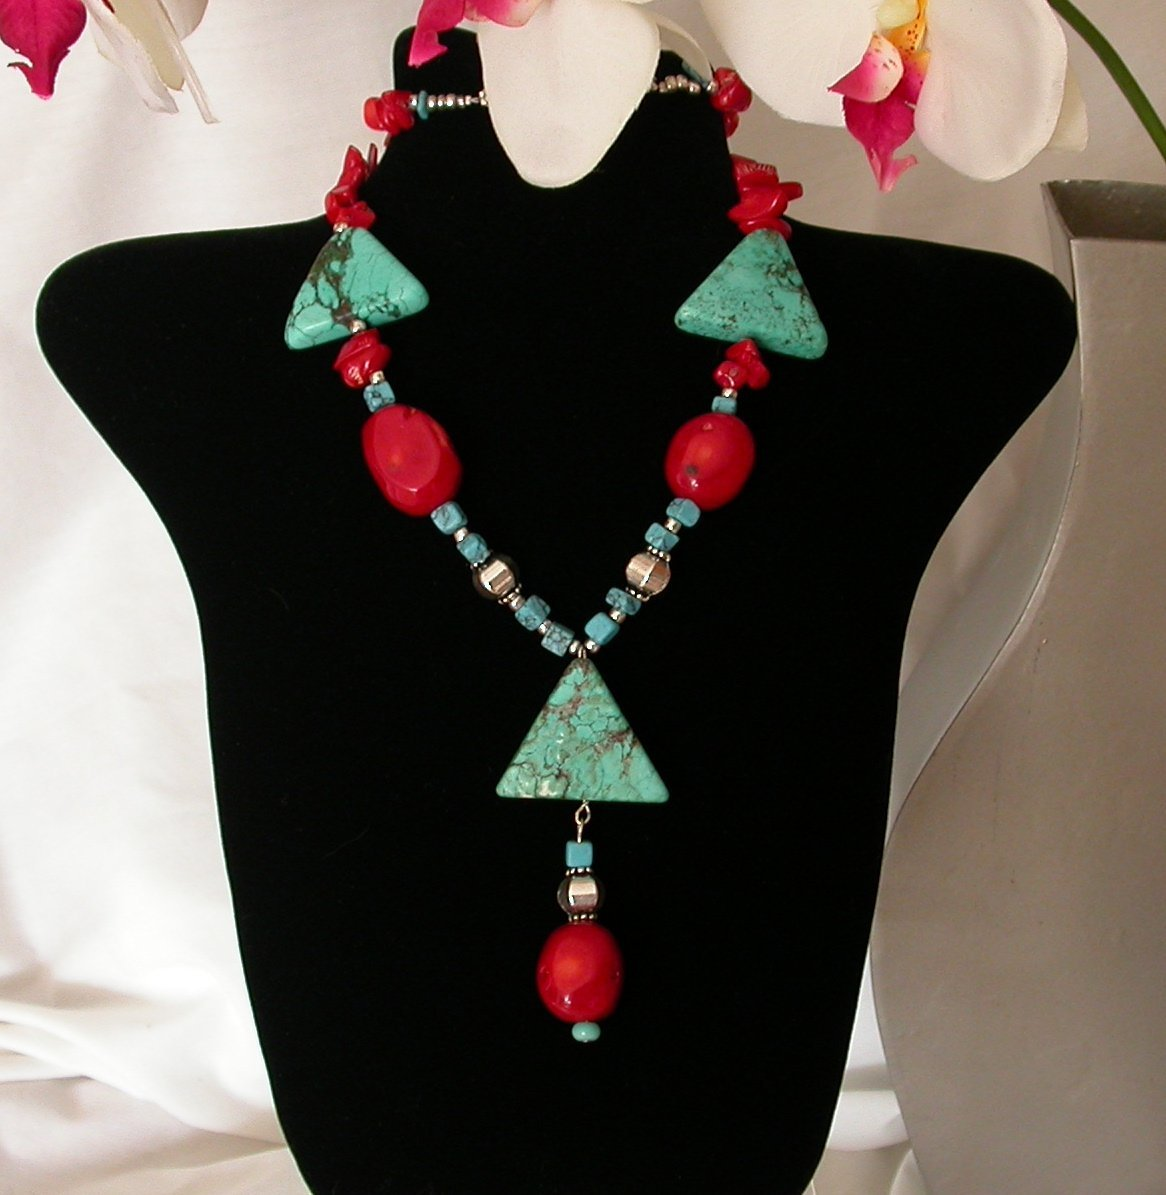 Turquoise Unique artisan Necklace and complimentary earrings